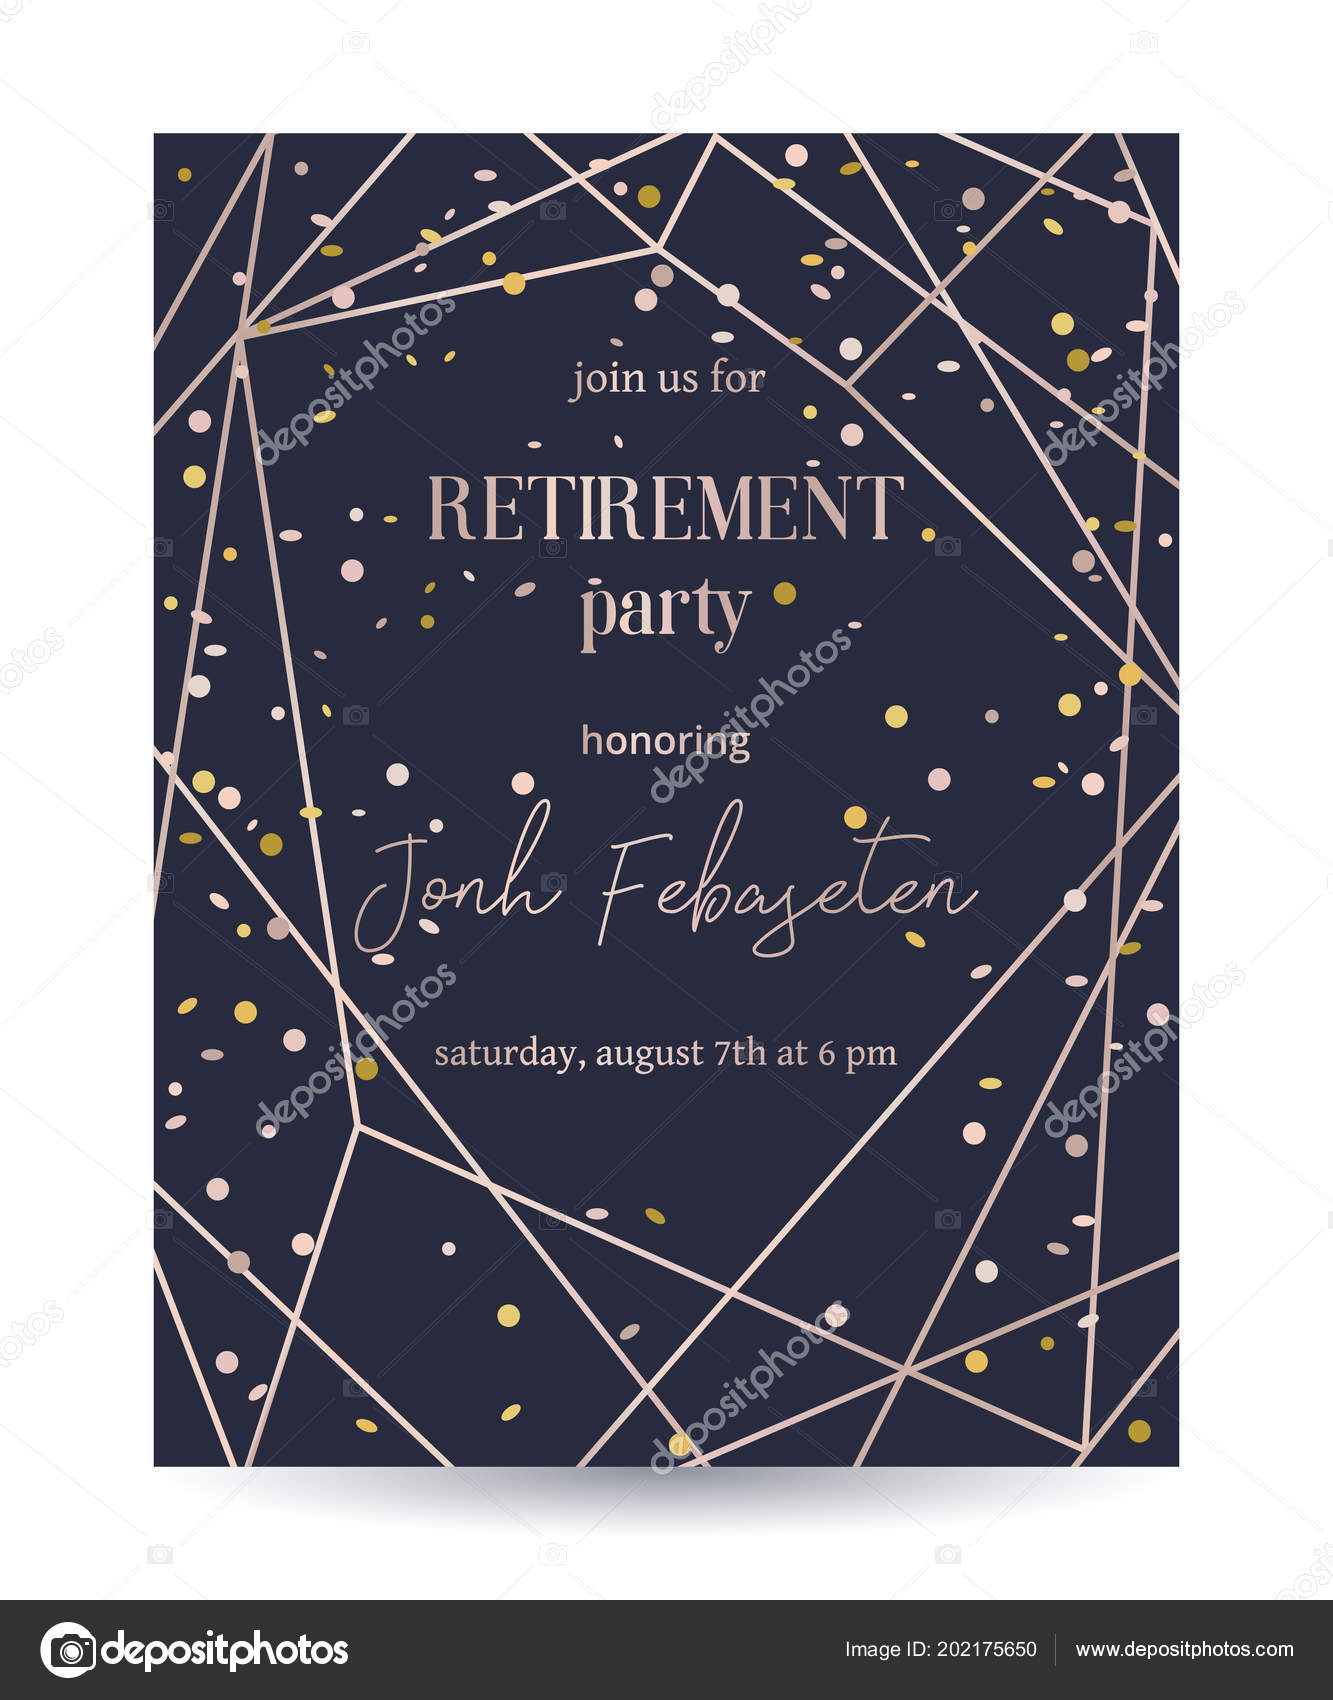 Retirement party invitation design template rose gold polygonal retirement party invitation design template rose gold polygonal frame confetti vetores de stock stopboris Image collections